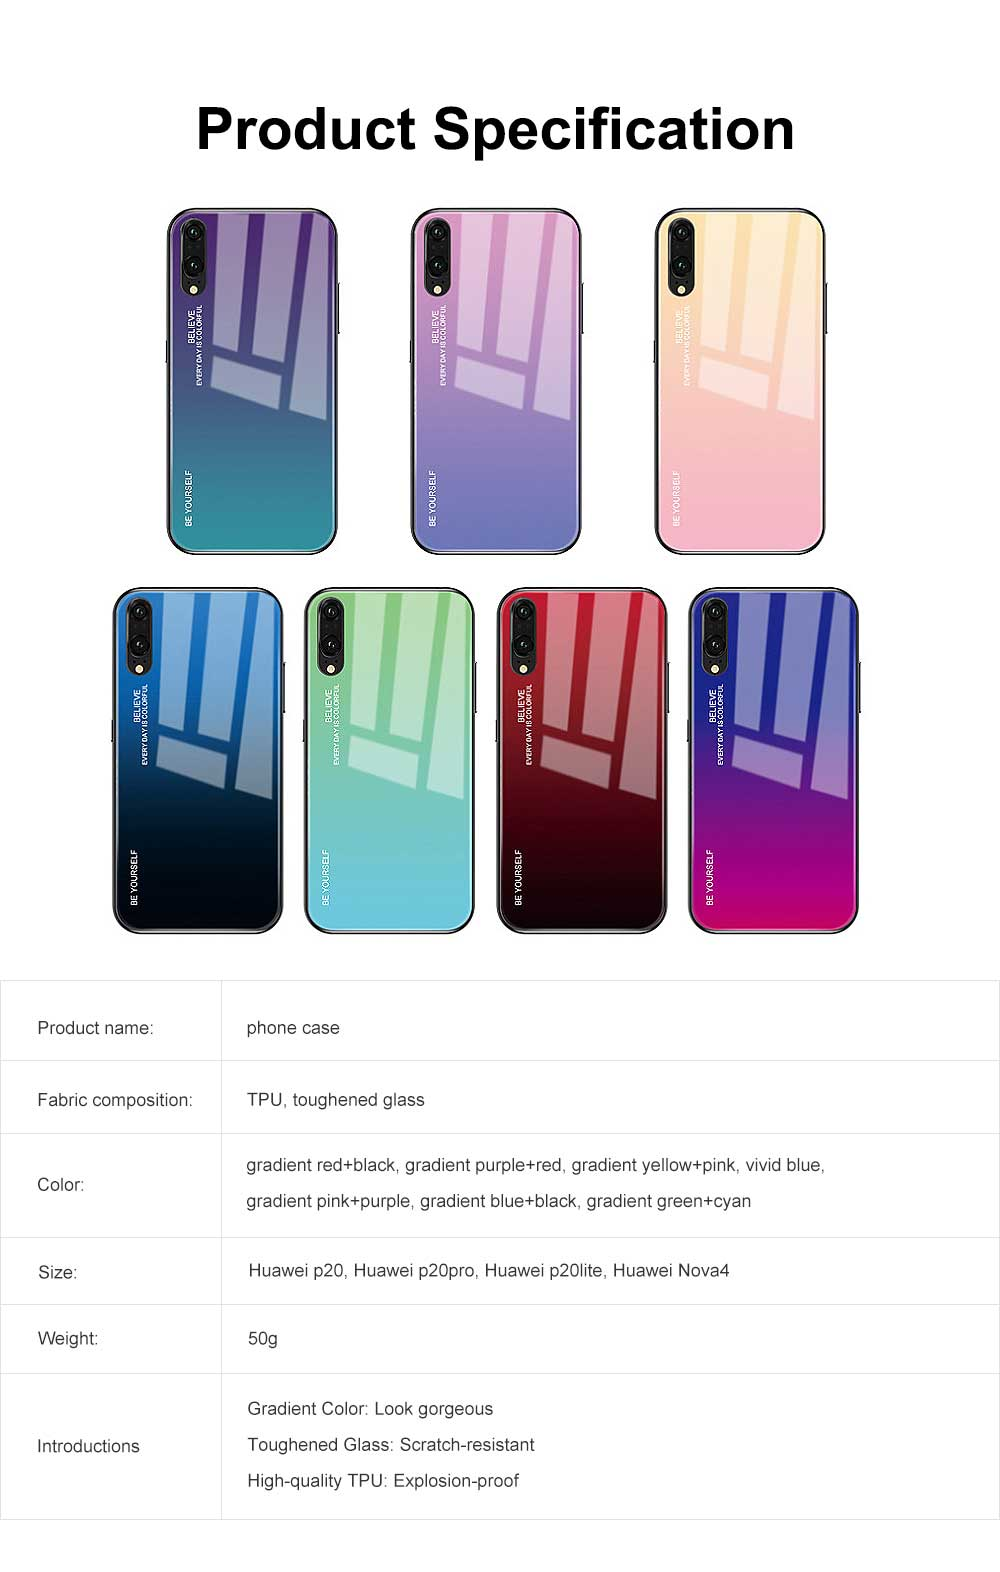 Gradient Phone Case for Huawei Nova 4, P20 Pro, P20 Lite, Explosion-proof and Scratch-resistant Case Cover with Toughened Glass and High-quality TPU 21